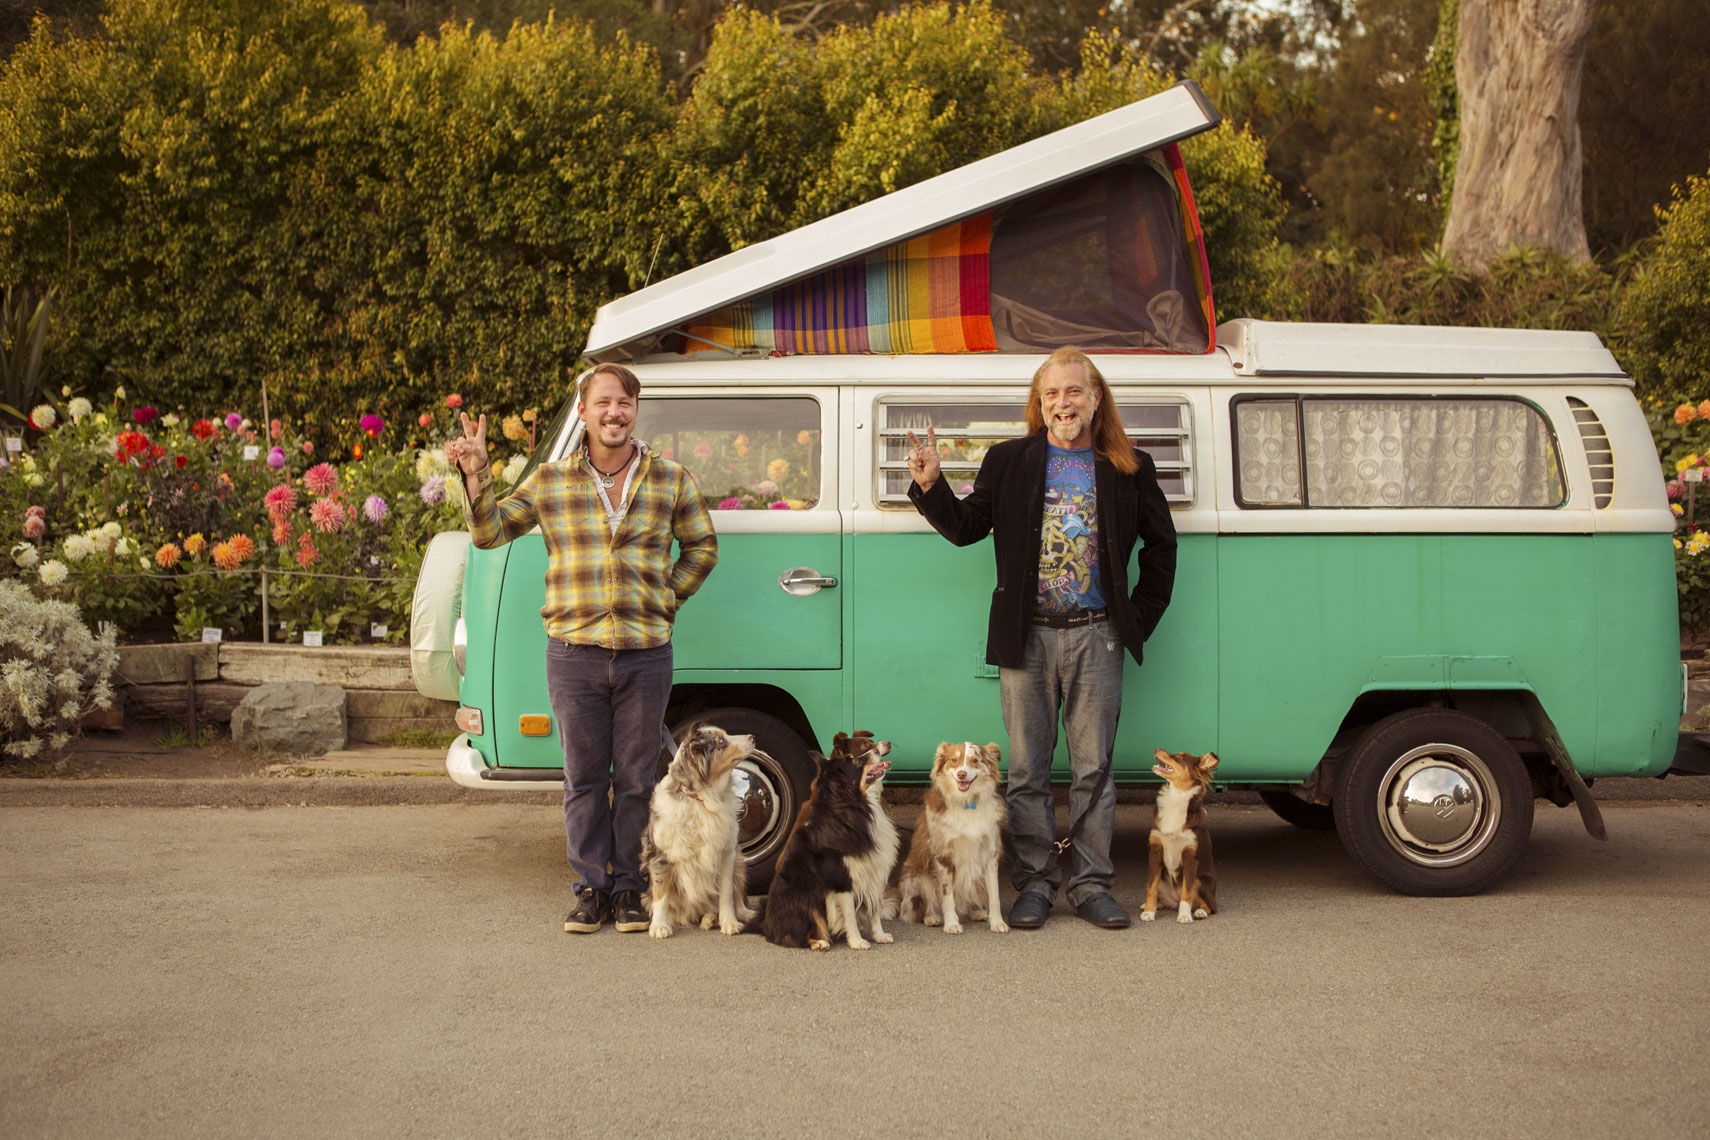 26_Life_Kris_Davidson_National_Geographic_San_Francisco_Hippie_Van